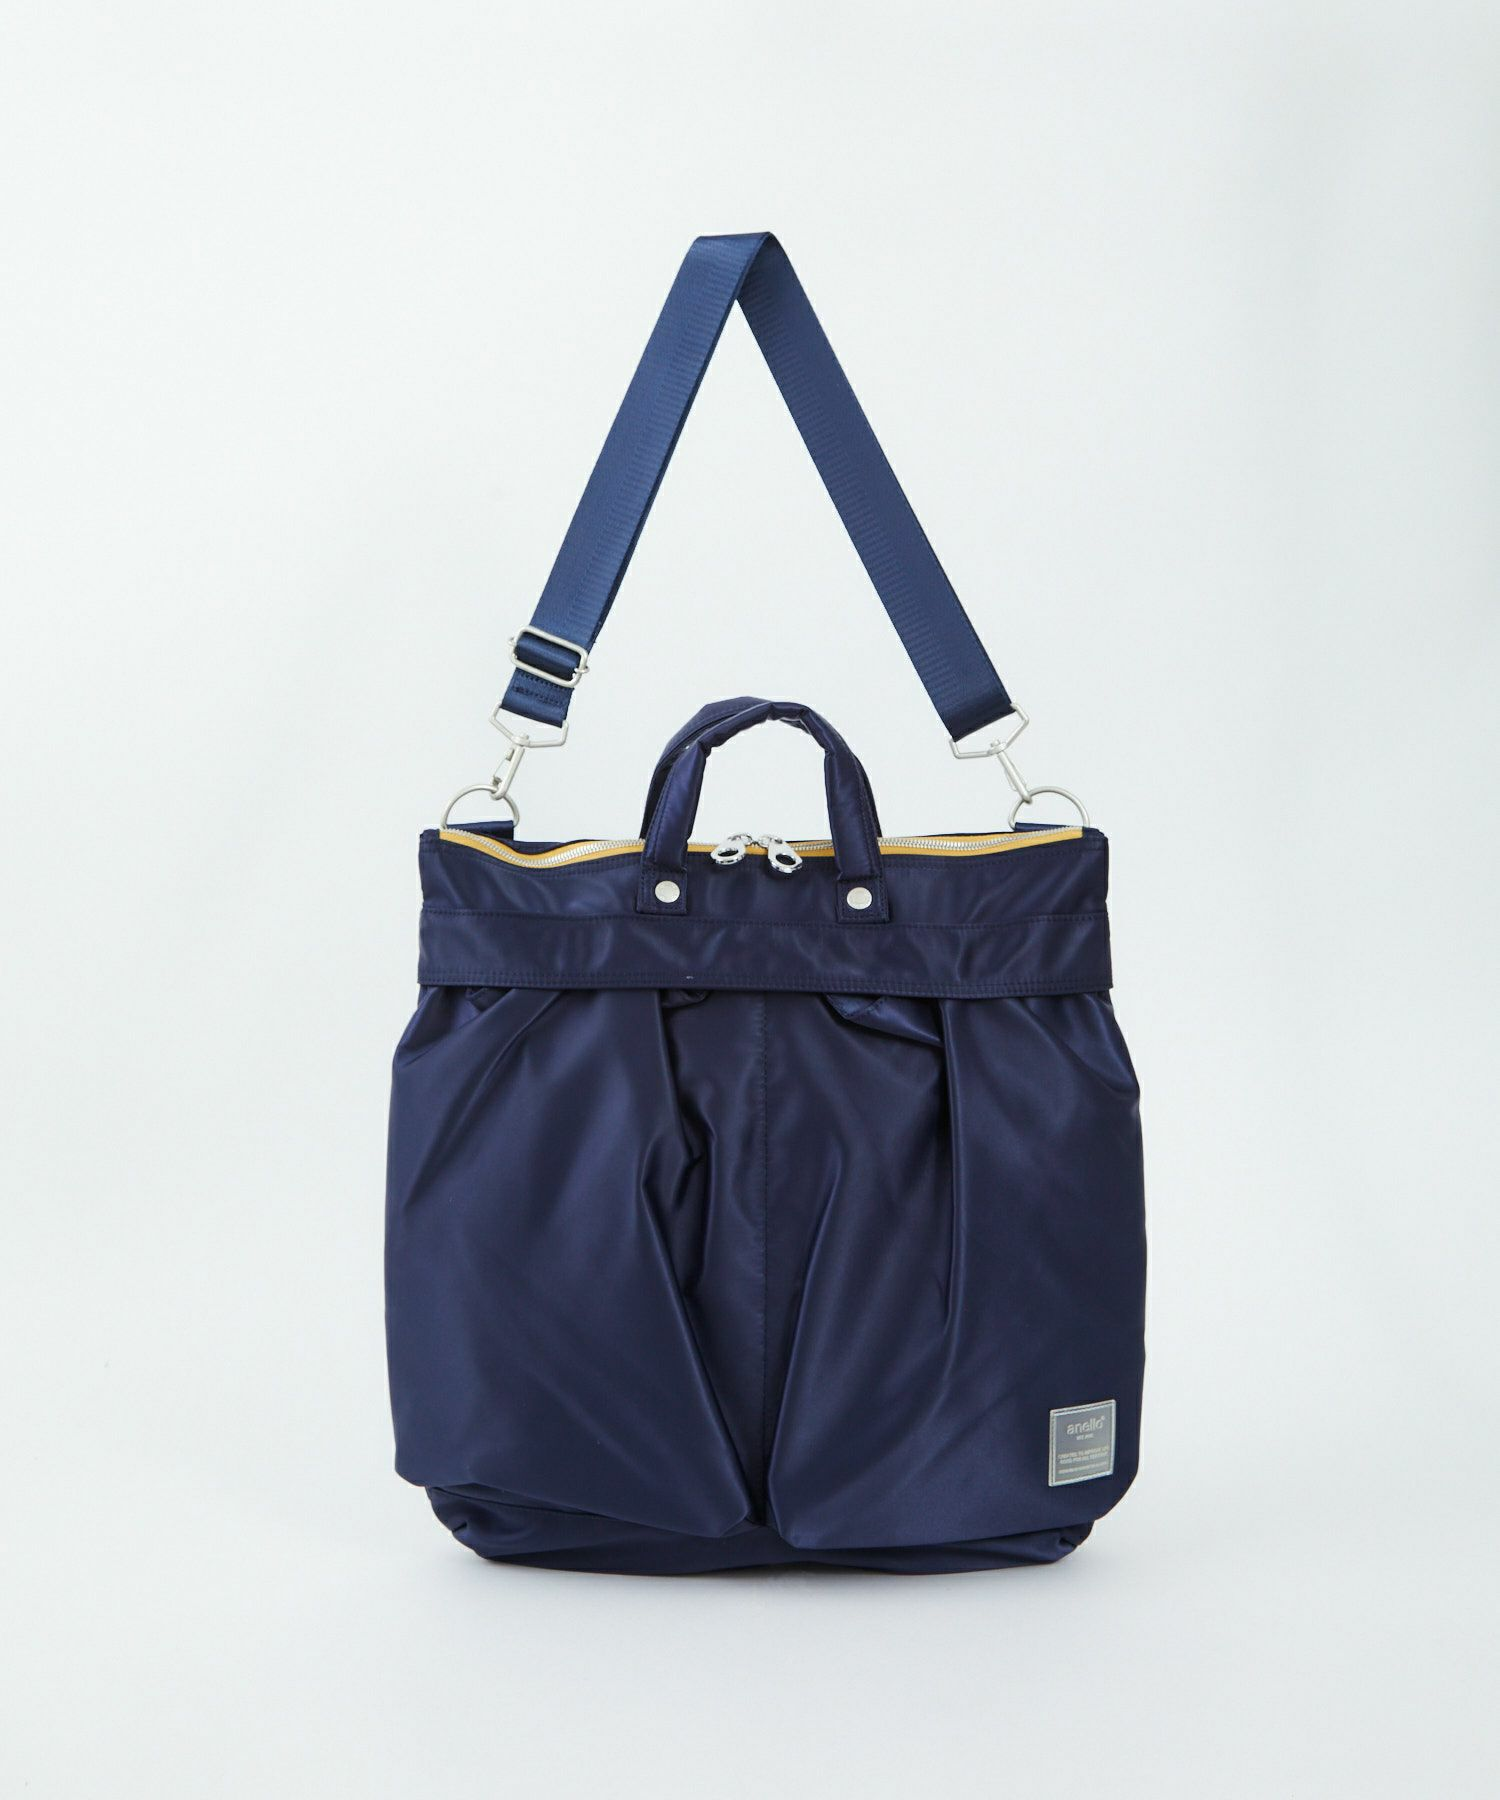 Anello SABRINA Nylon 2 Way Regular Shoulder Bag ATT0504 Navy Japan Original Official Authentic Real Genuine Bag Free Shipping Worldwide Special Discount Low Prices Great Offer